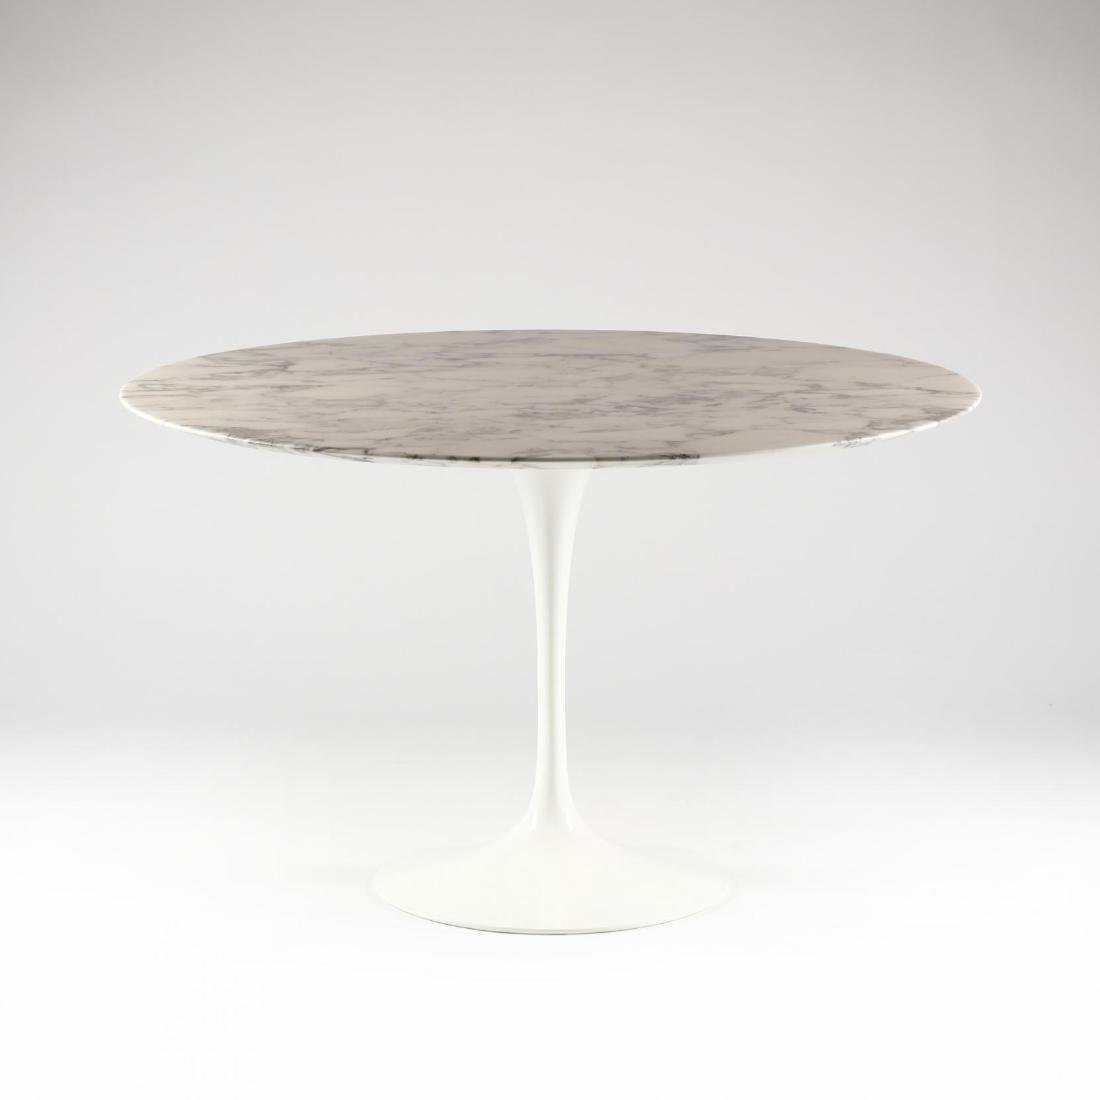 Eero Saarinen, Round Marble Top  Tulip Table